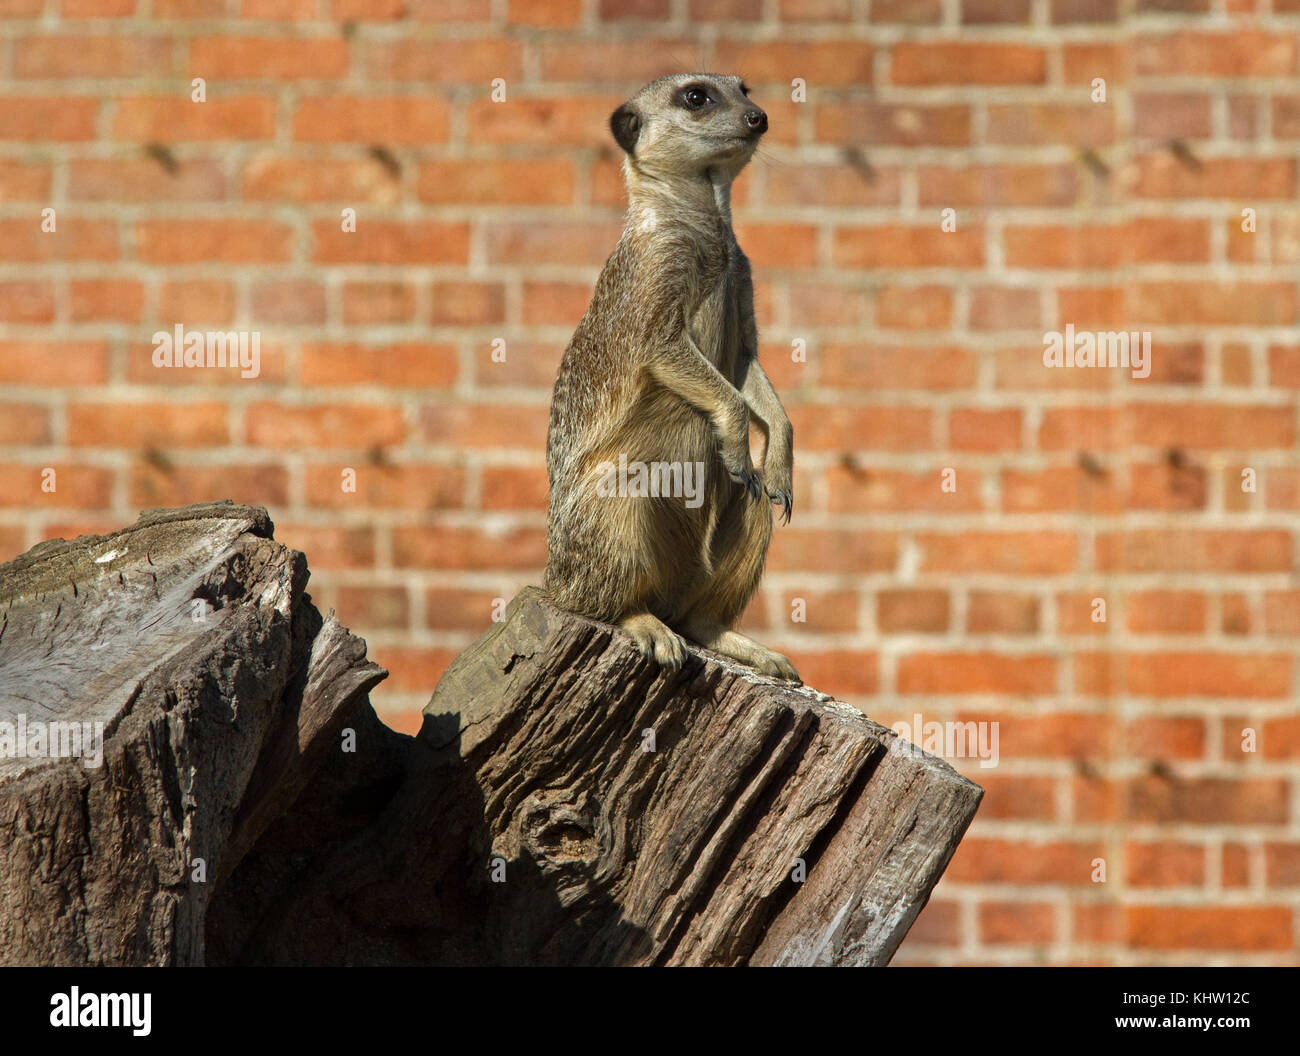 Meerkat (Suricata suricatta) on sentry duty - Stock Image